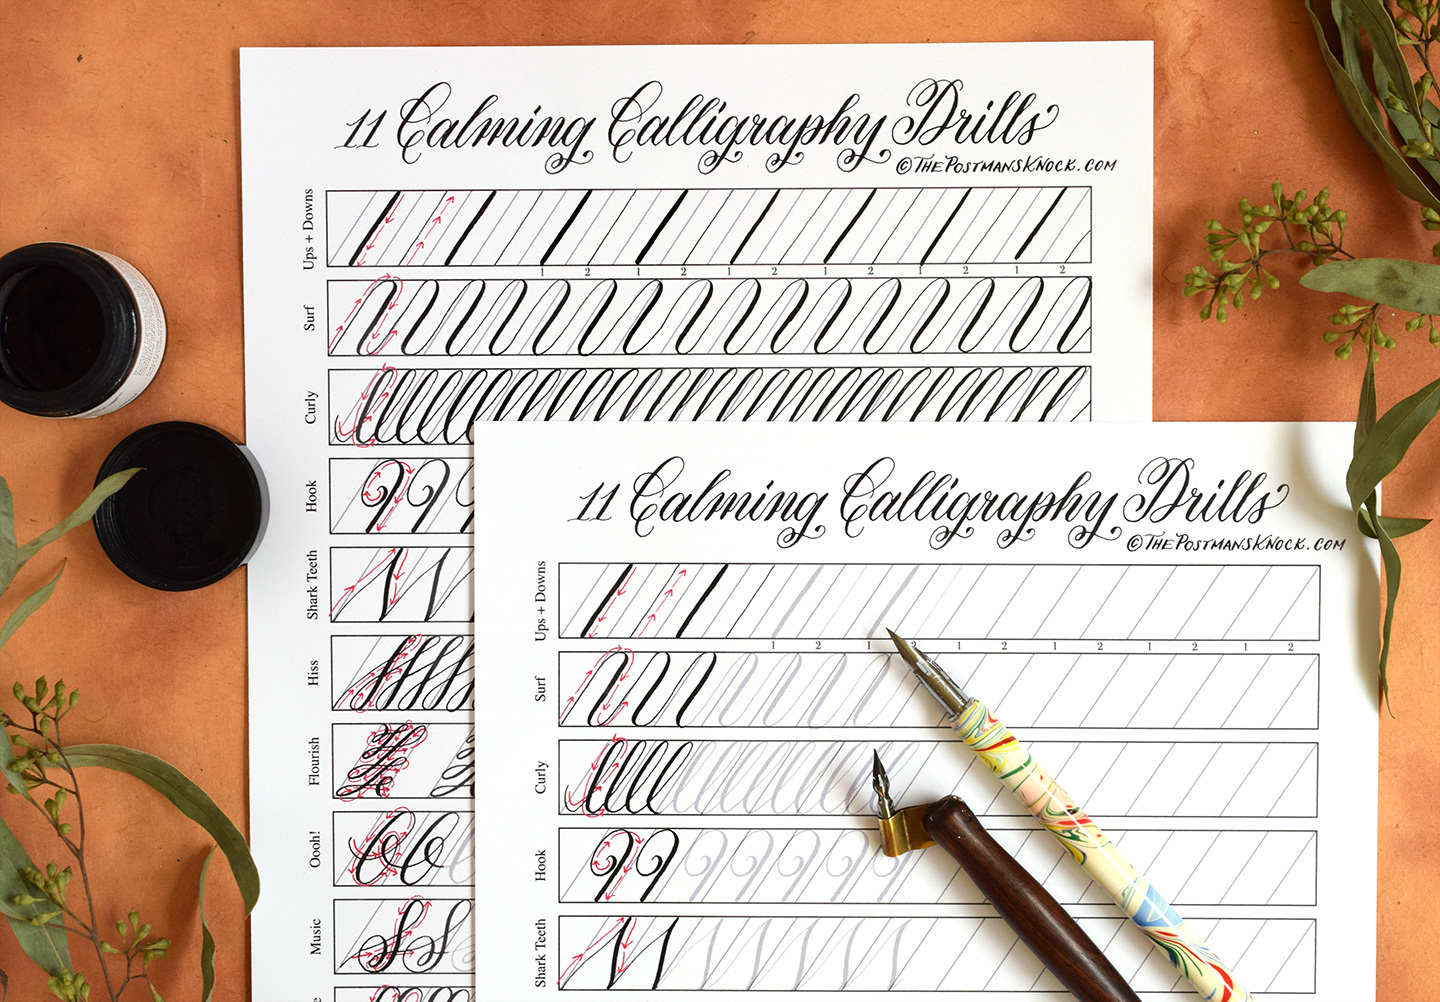 Modern Calligraphy Online Generator 11 Calming Calligraphy Drills Printable Free Download The